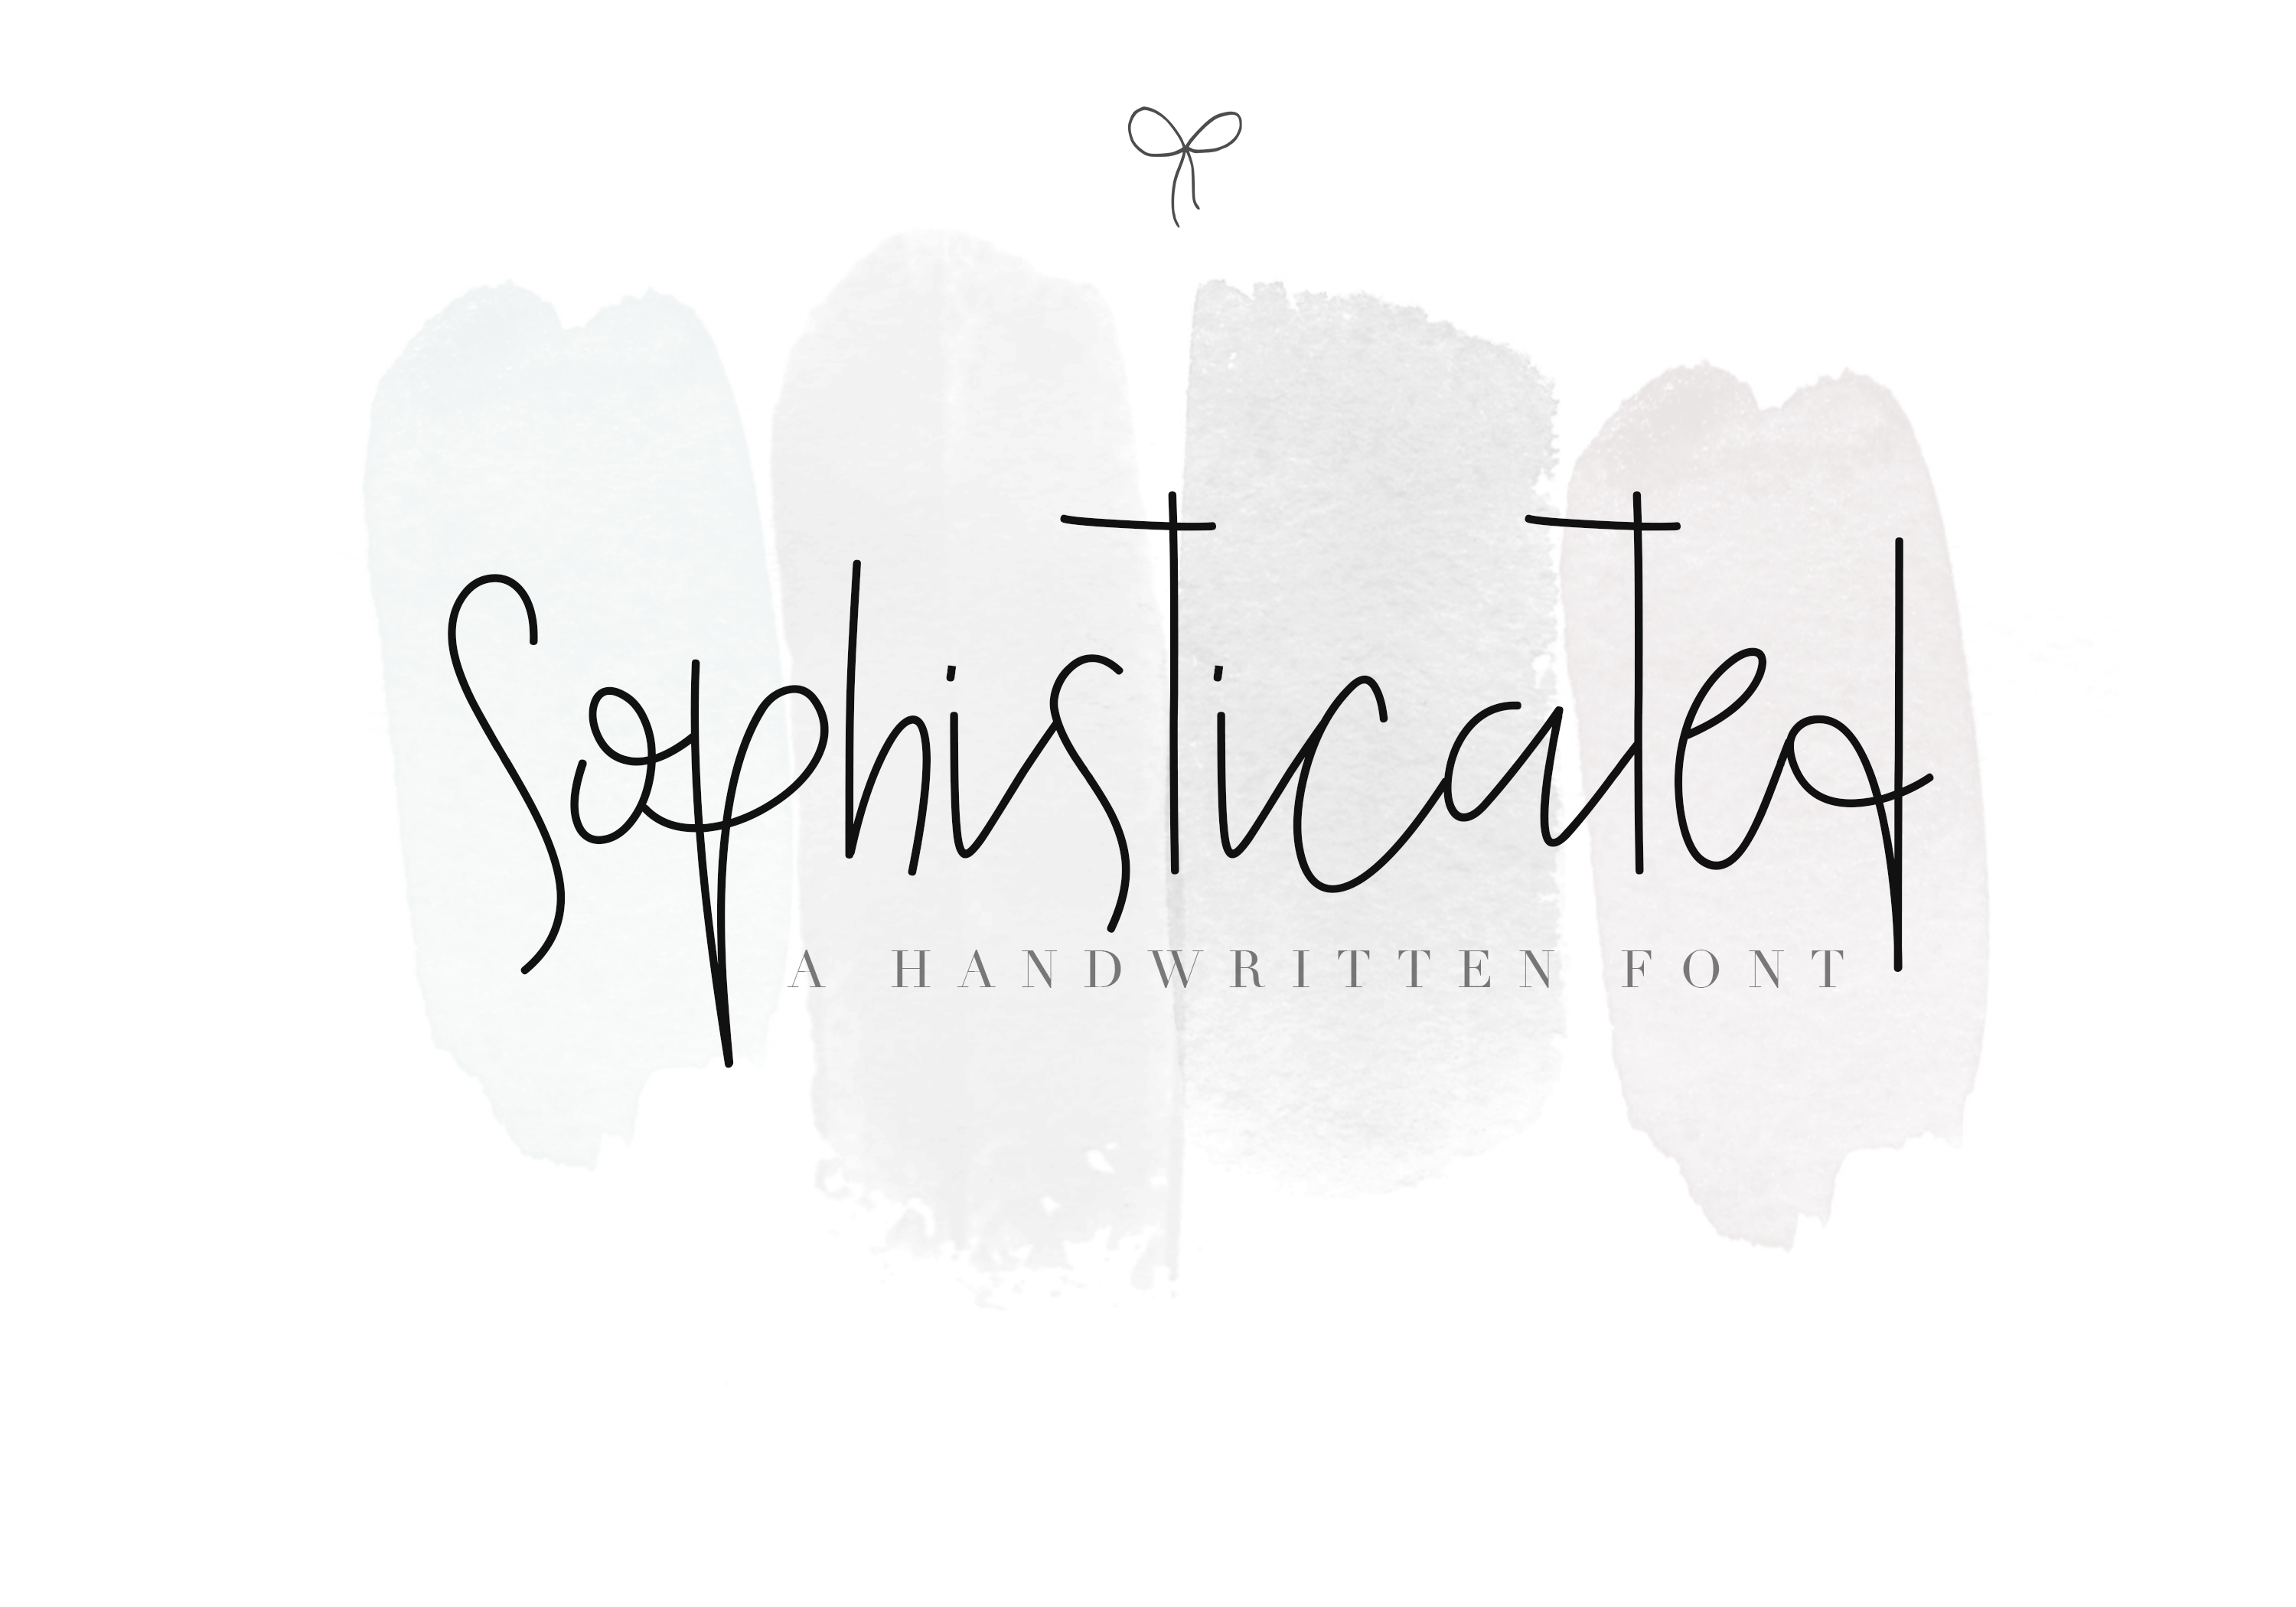 Sophisticated Outfit - A Chic Handwritten Font example image 1